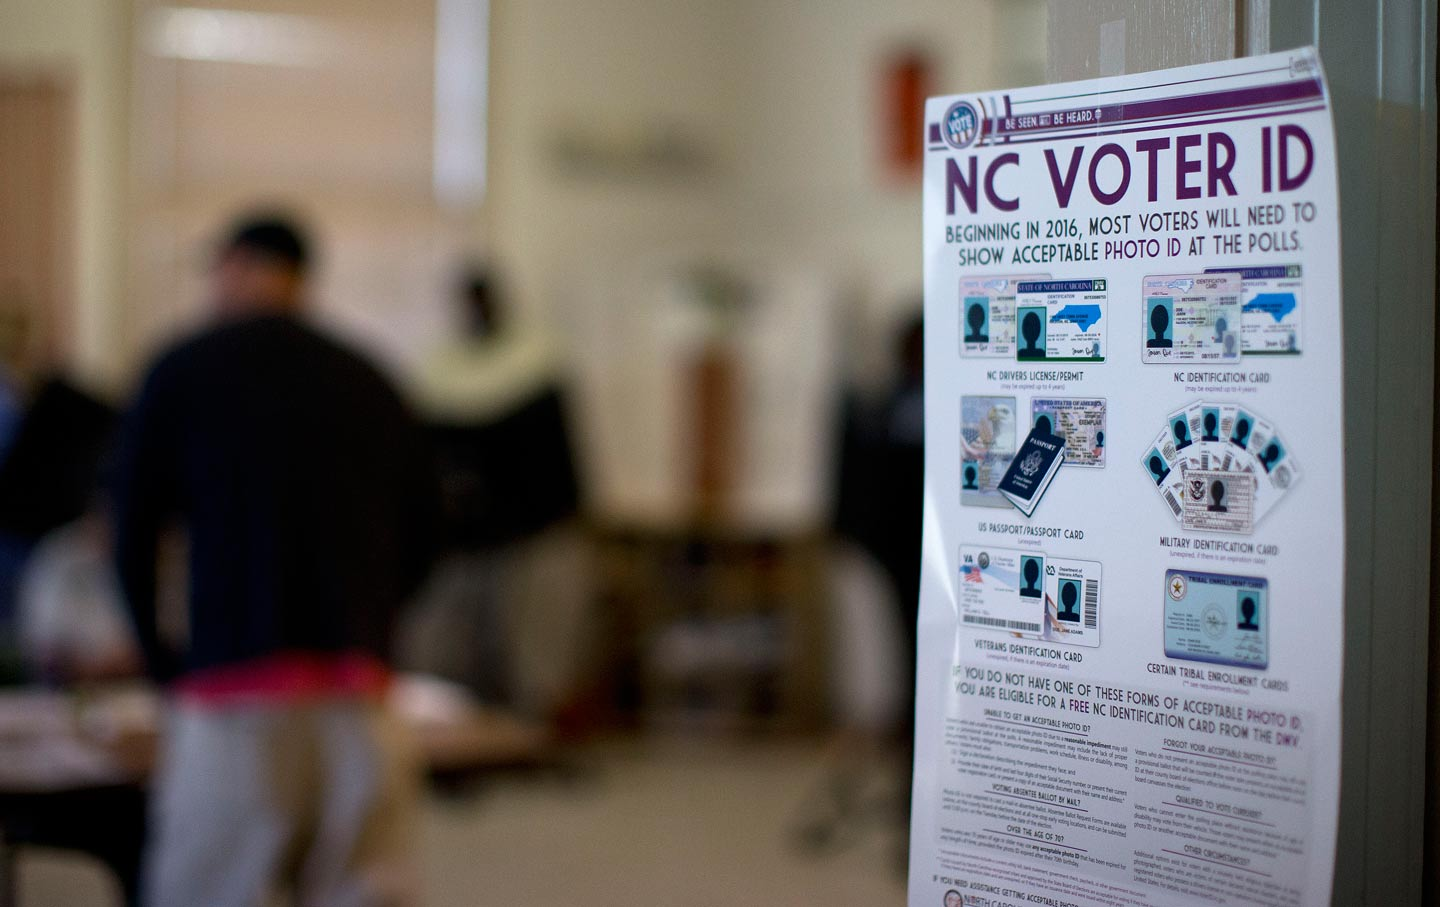 The Gutting of the Voting Rights Act Could Decide the 2016 Election